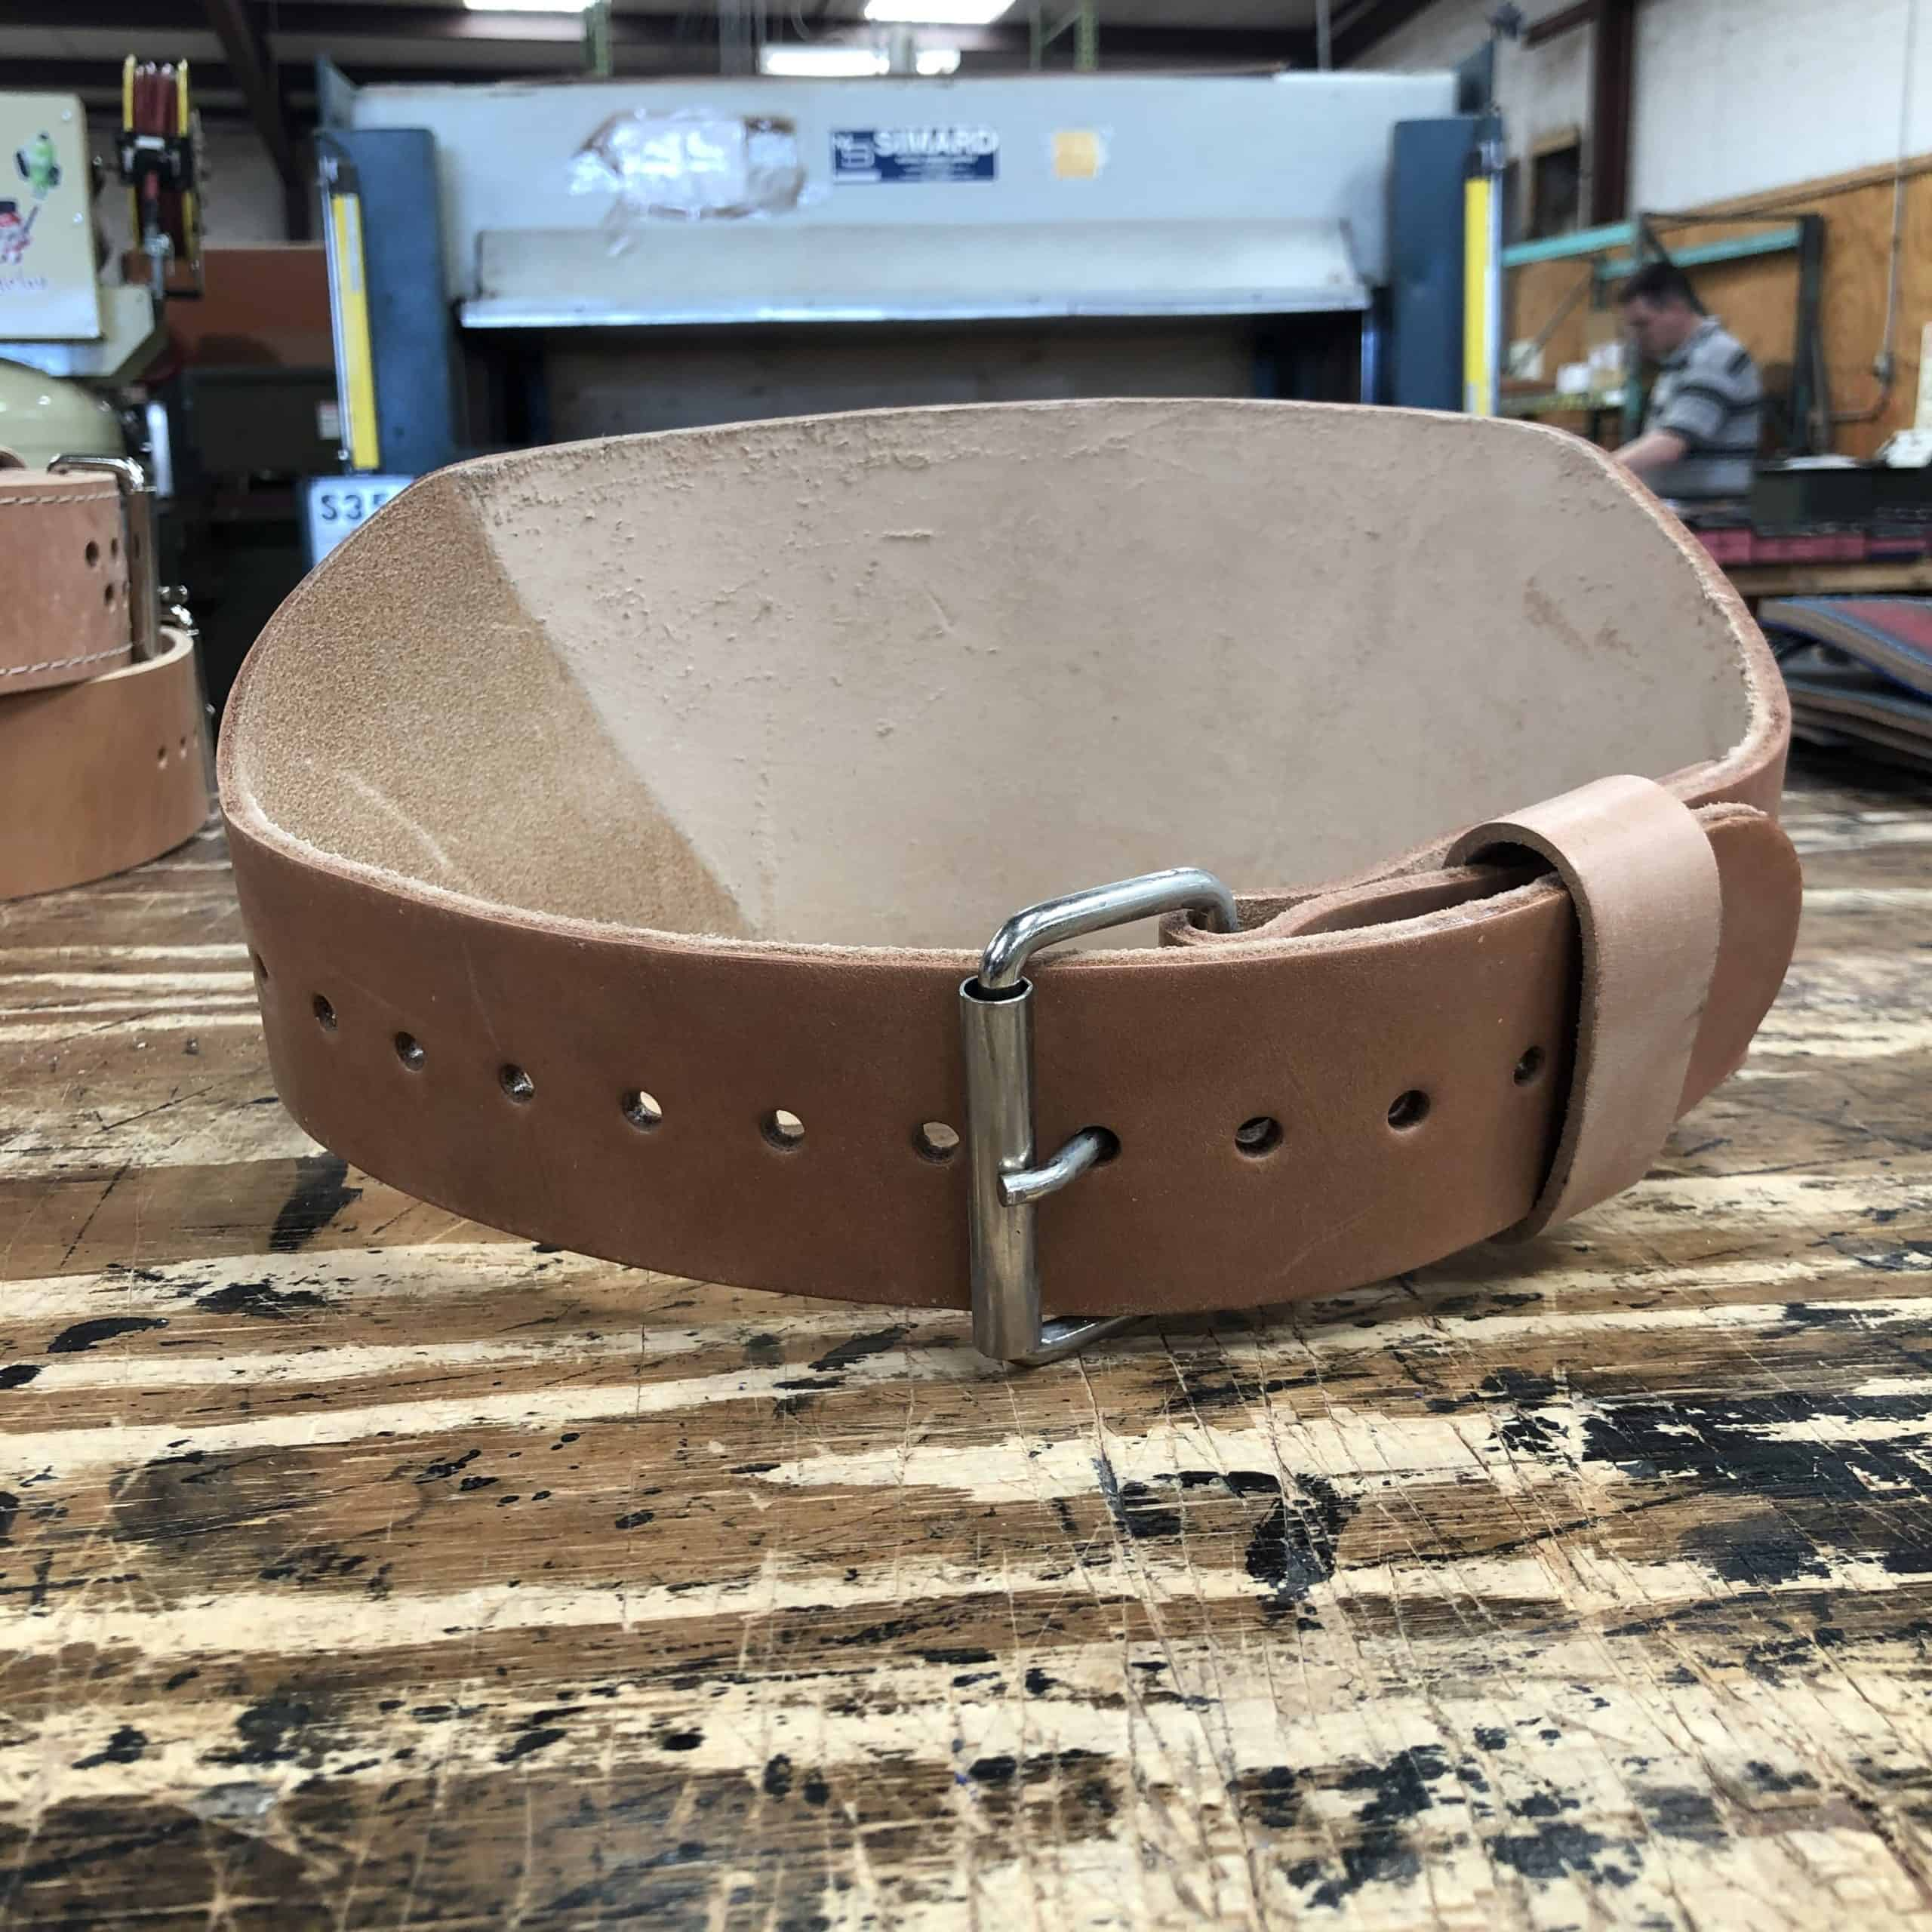 Discount Belt 6.5mm Thick – 6″ Leather Training Belt by Pioneer #147 Small